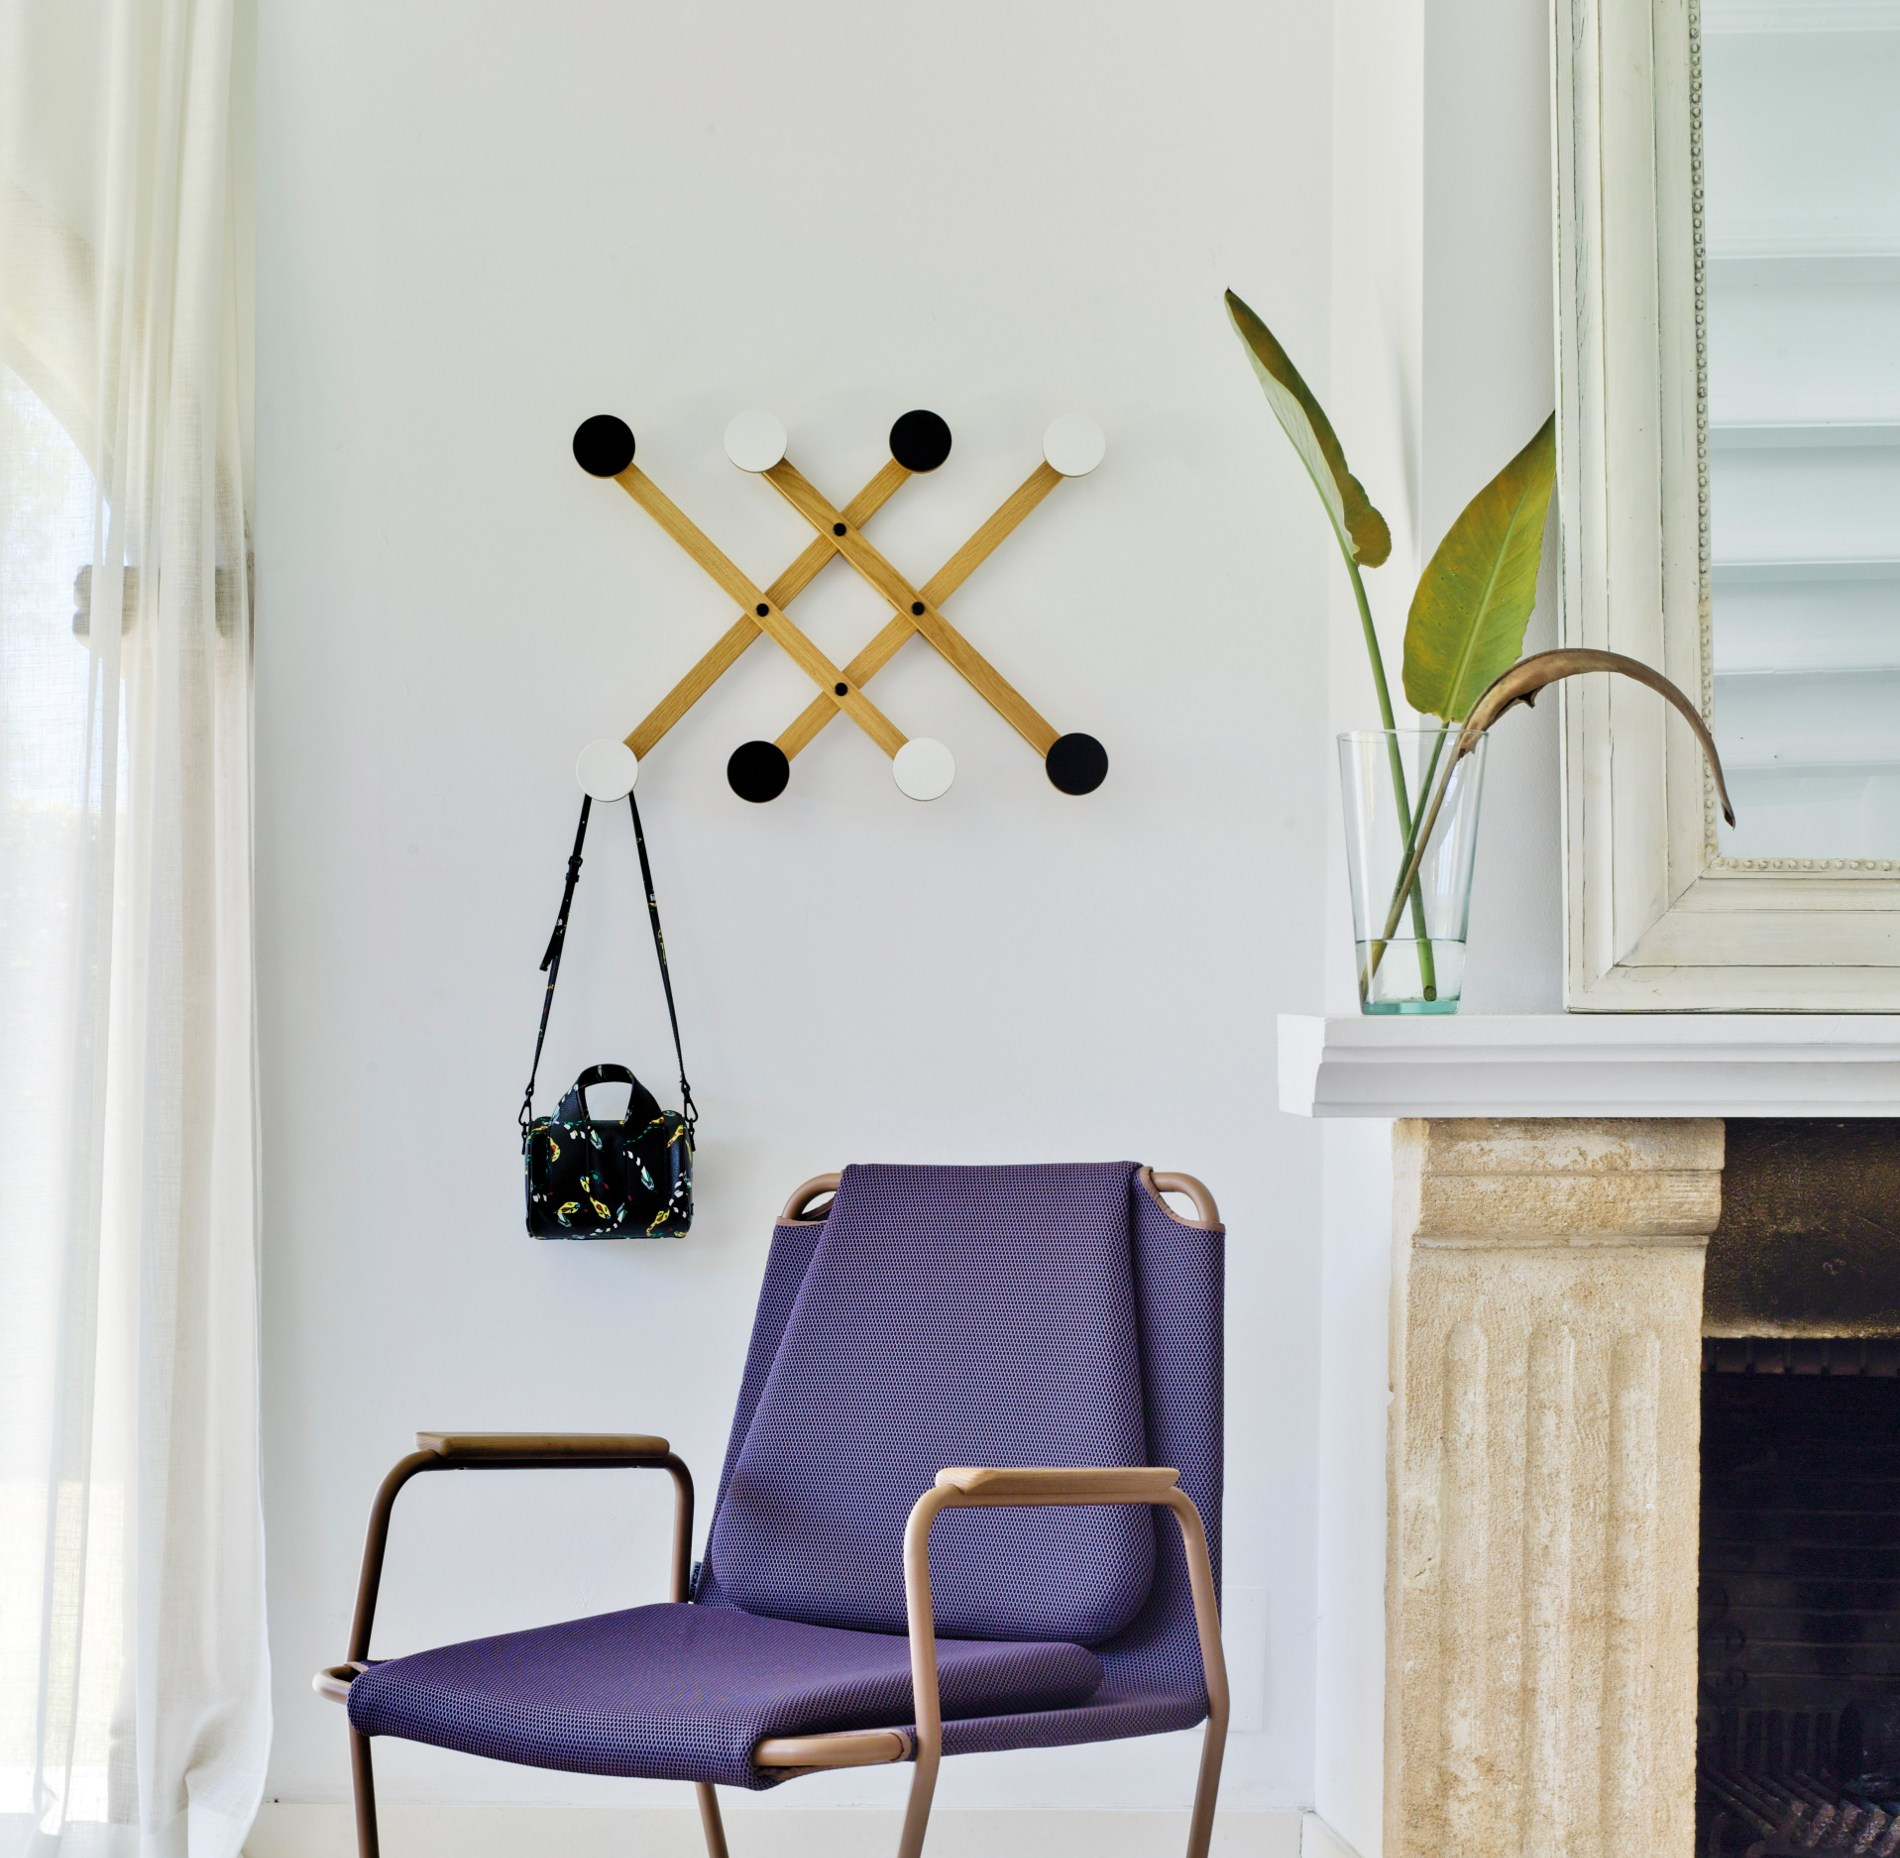 Wall mounted wooden coat rack PAULI by SANCAL design Mark